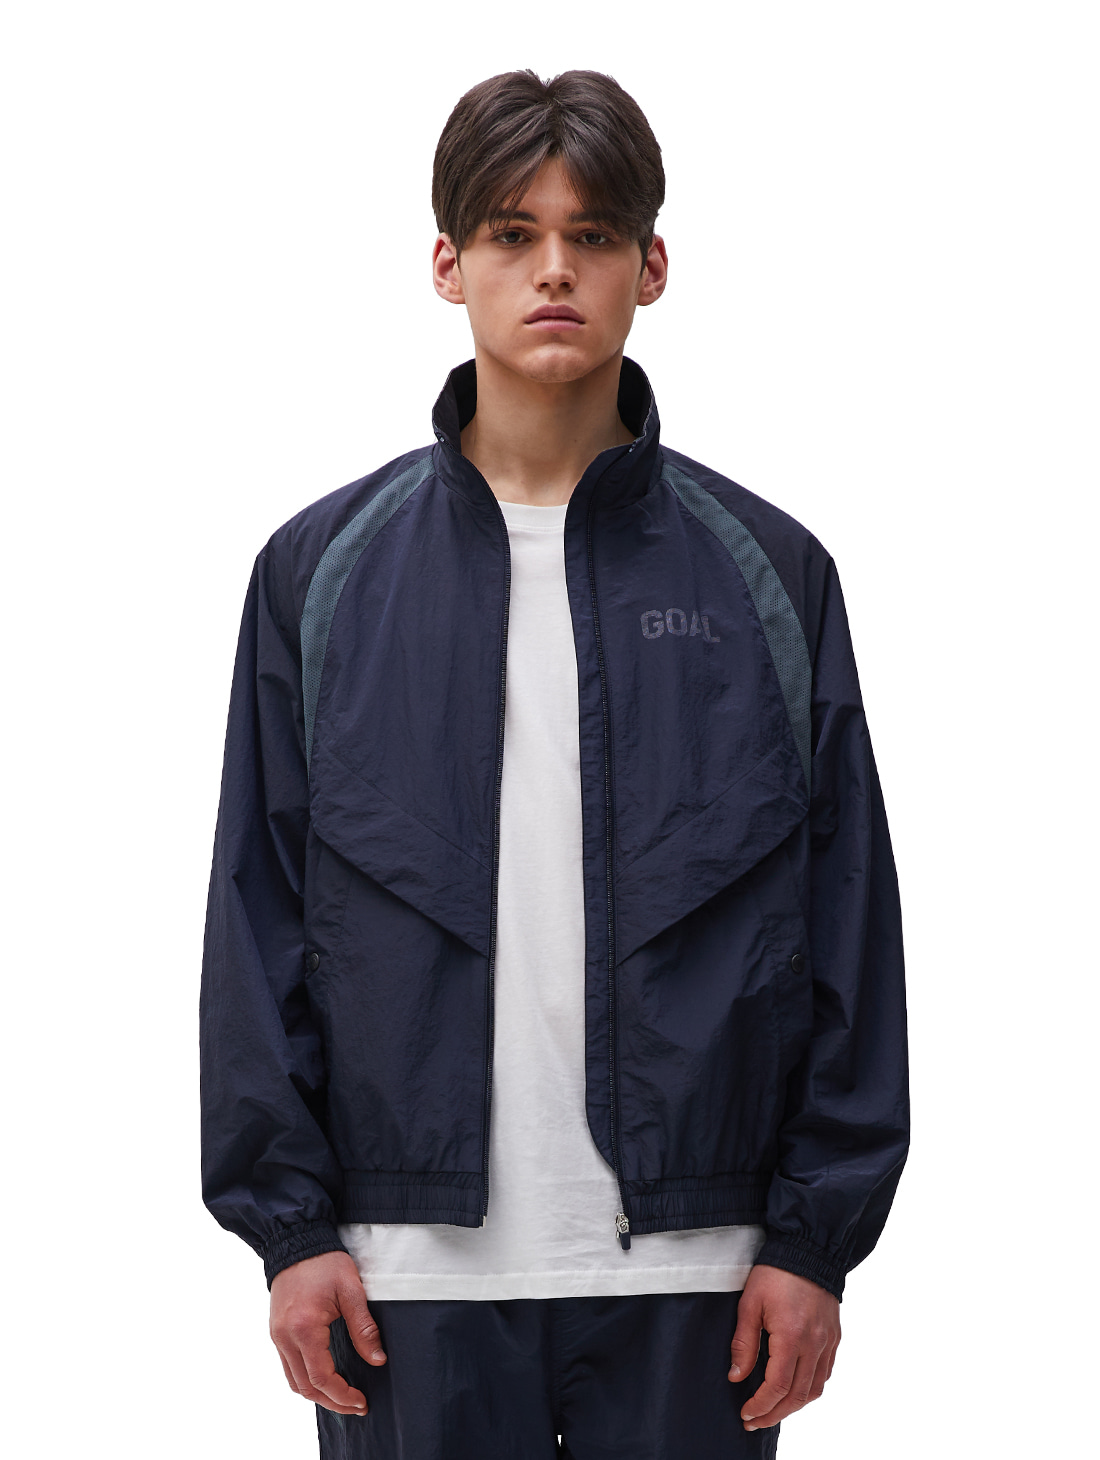 GOALSTUDIO WARMUP JACKET - NAVY